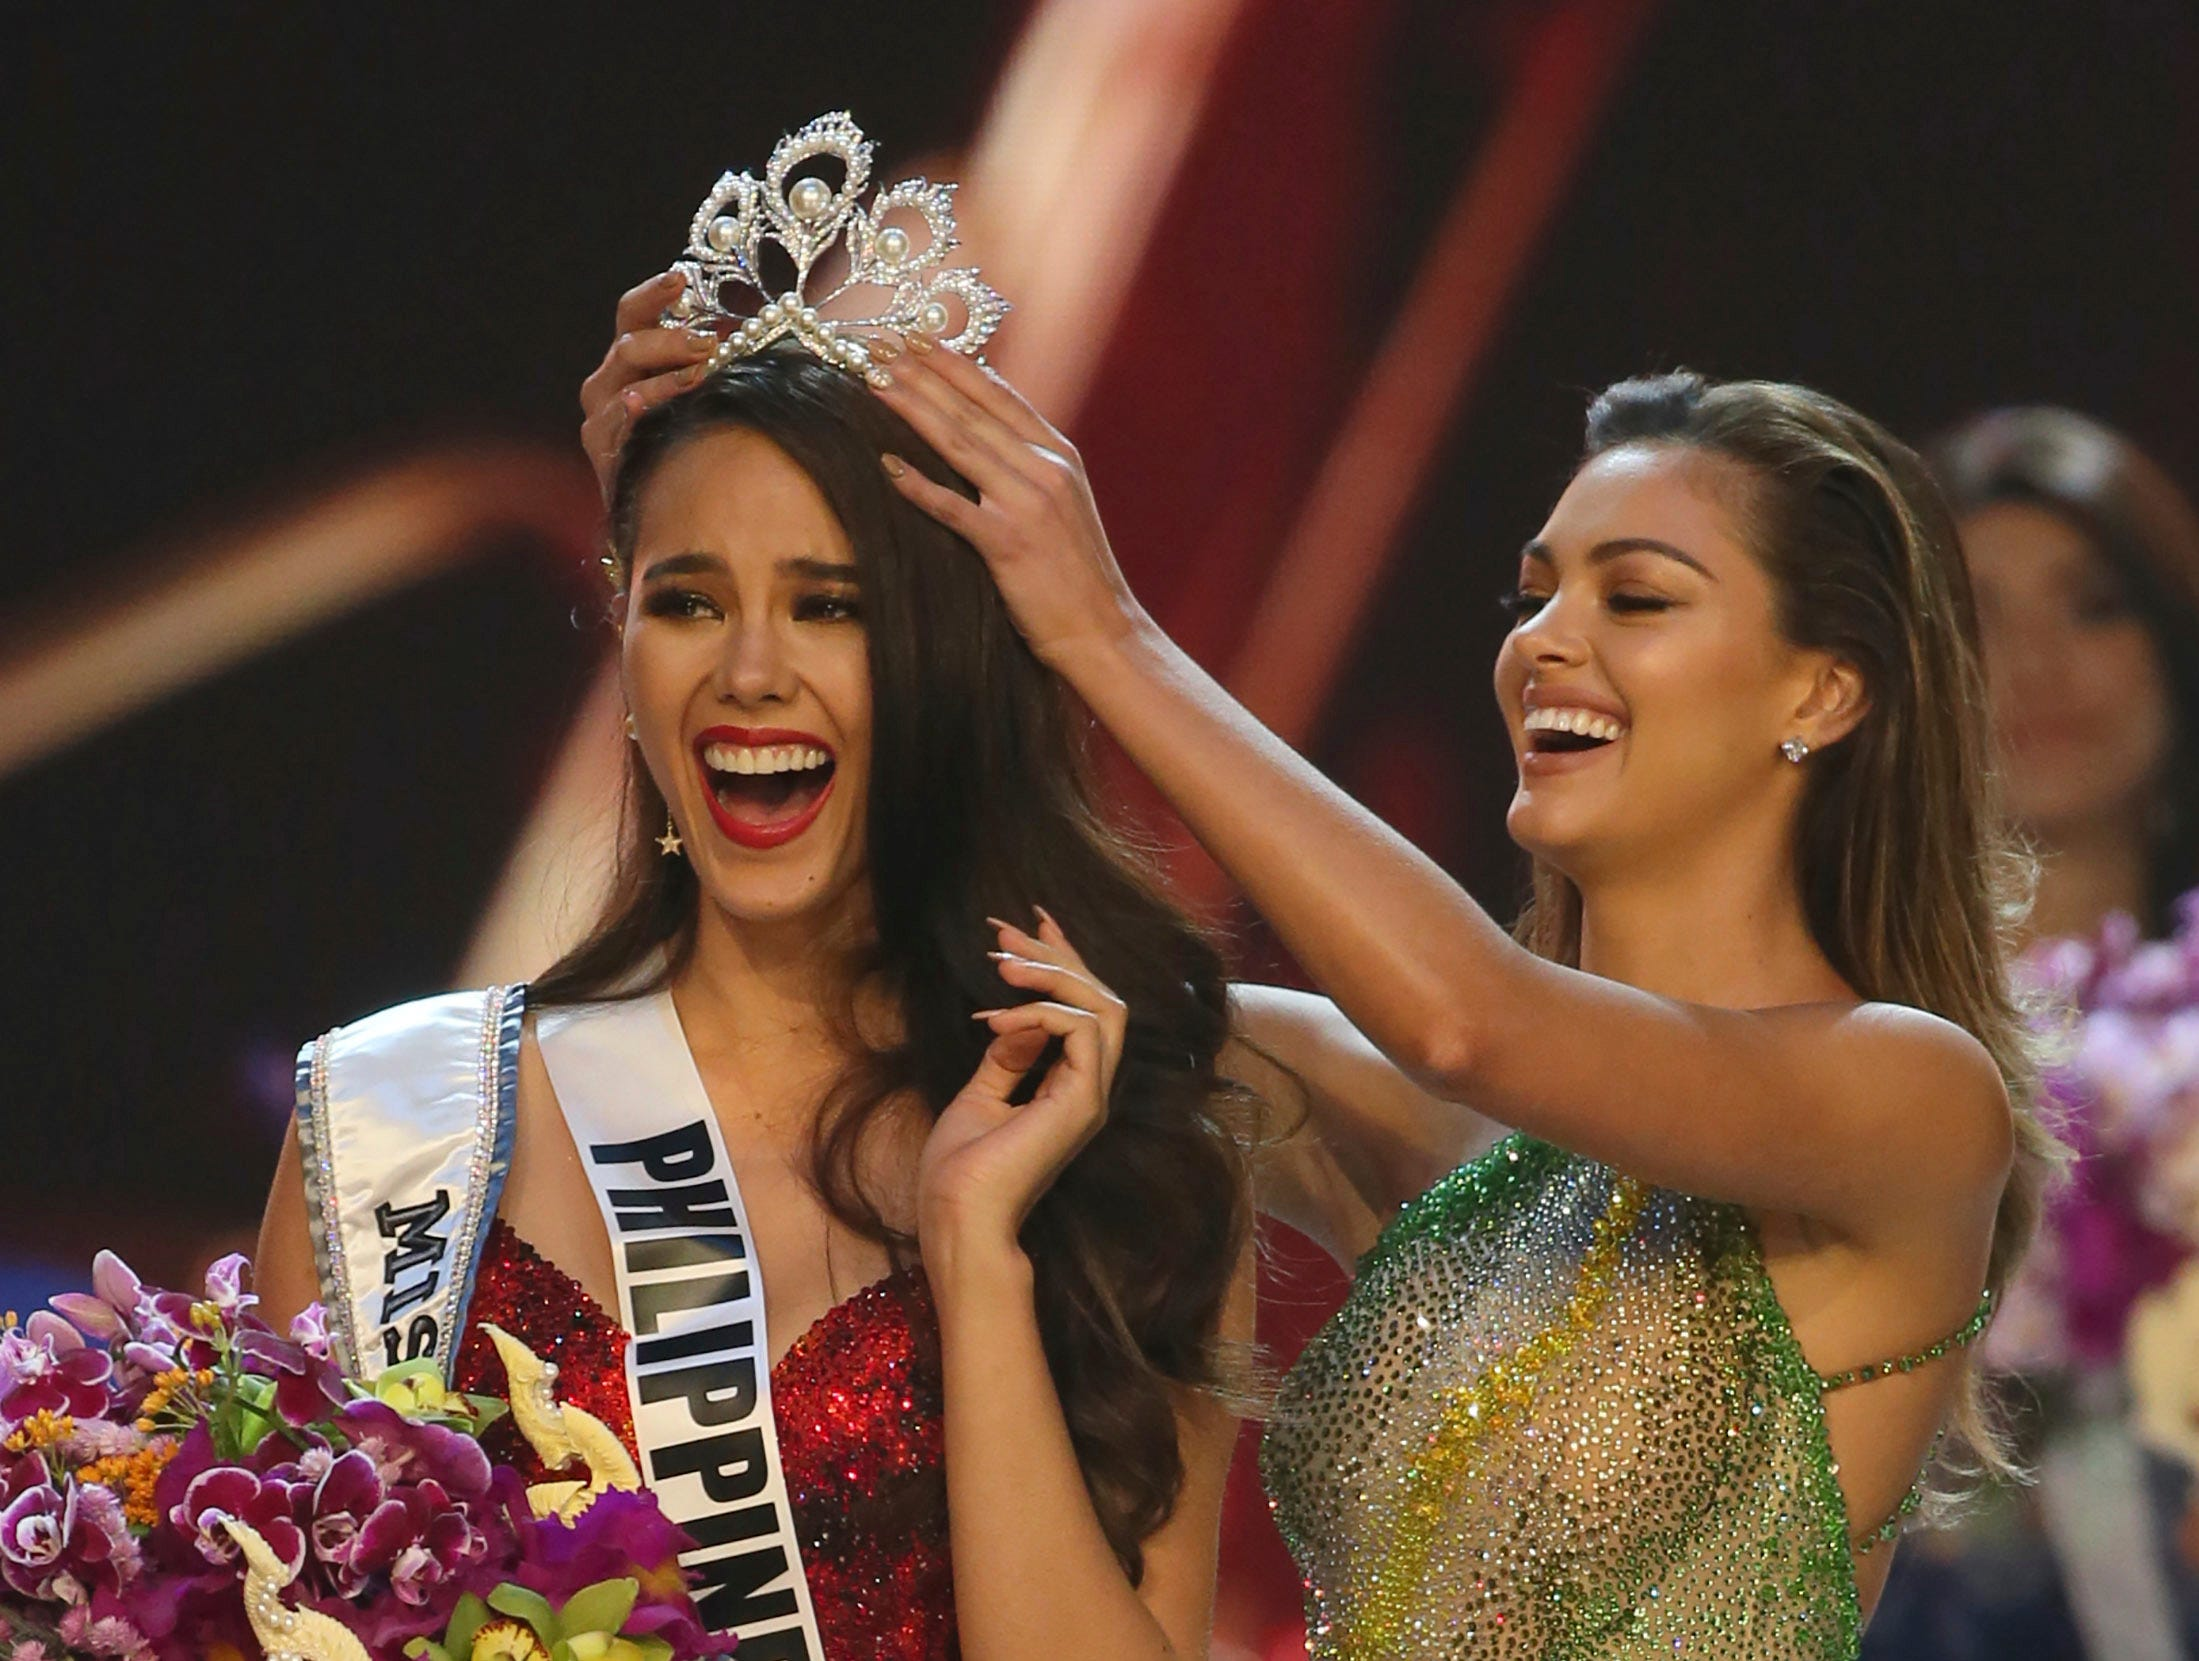 Catriona Gray of the Philippines, left, reacts as she is crowned the new Miss Universe 2018 by Miss Universe 2017 Demi-Leigh Nel-Peters during the final round of the 67th Miss Universe competition in Bangkok, Thailand, Monday, Dec. 17, 2018.(AP Photo/Gemunu Amarasinghe) ORG XMIT: XVT132